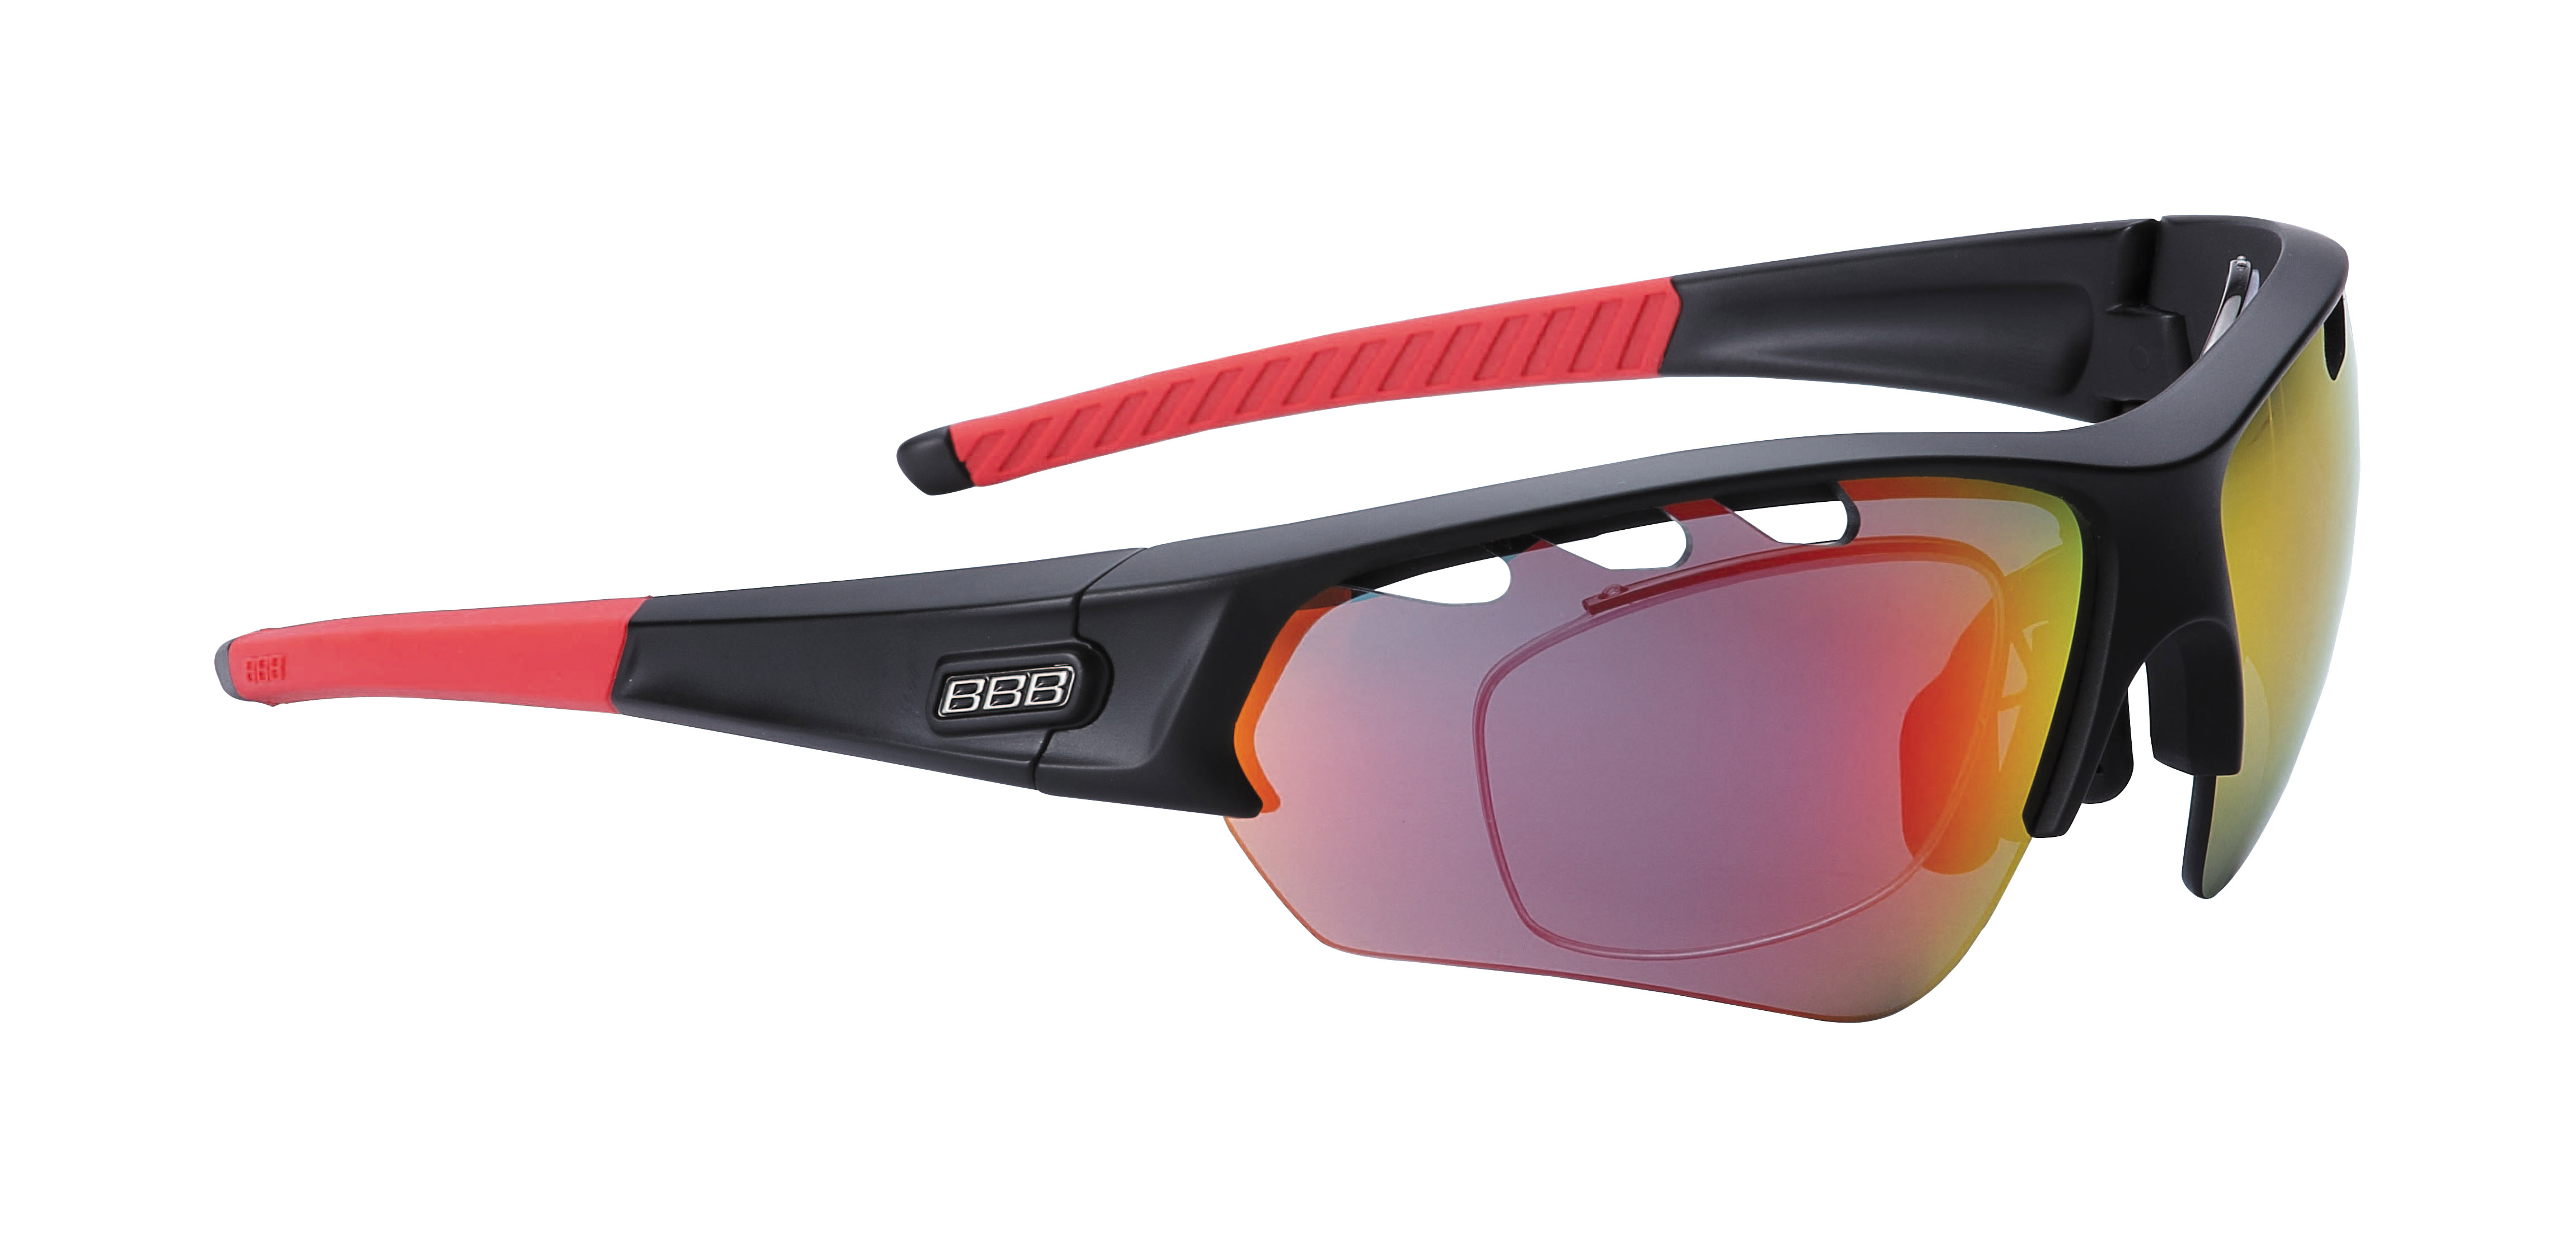 Bbb-Bsg-51-Select-Optic-M-Blk-Red-Tips-Red-Lens